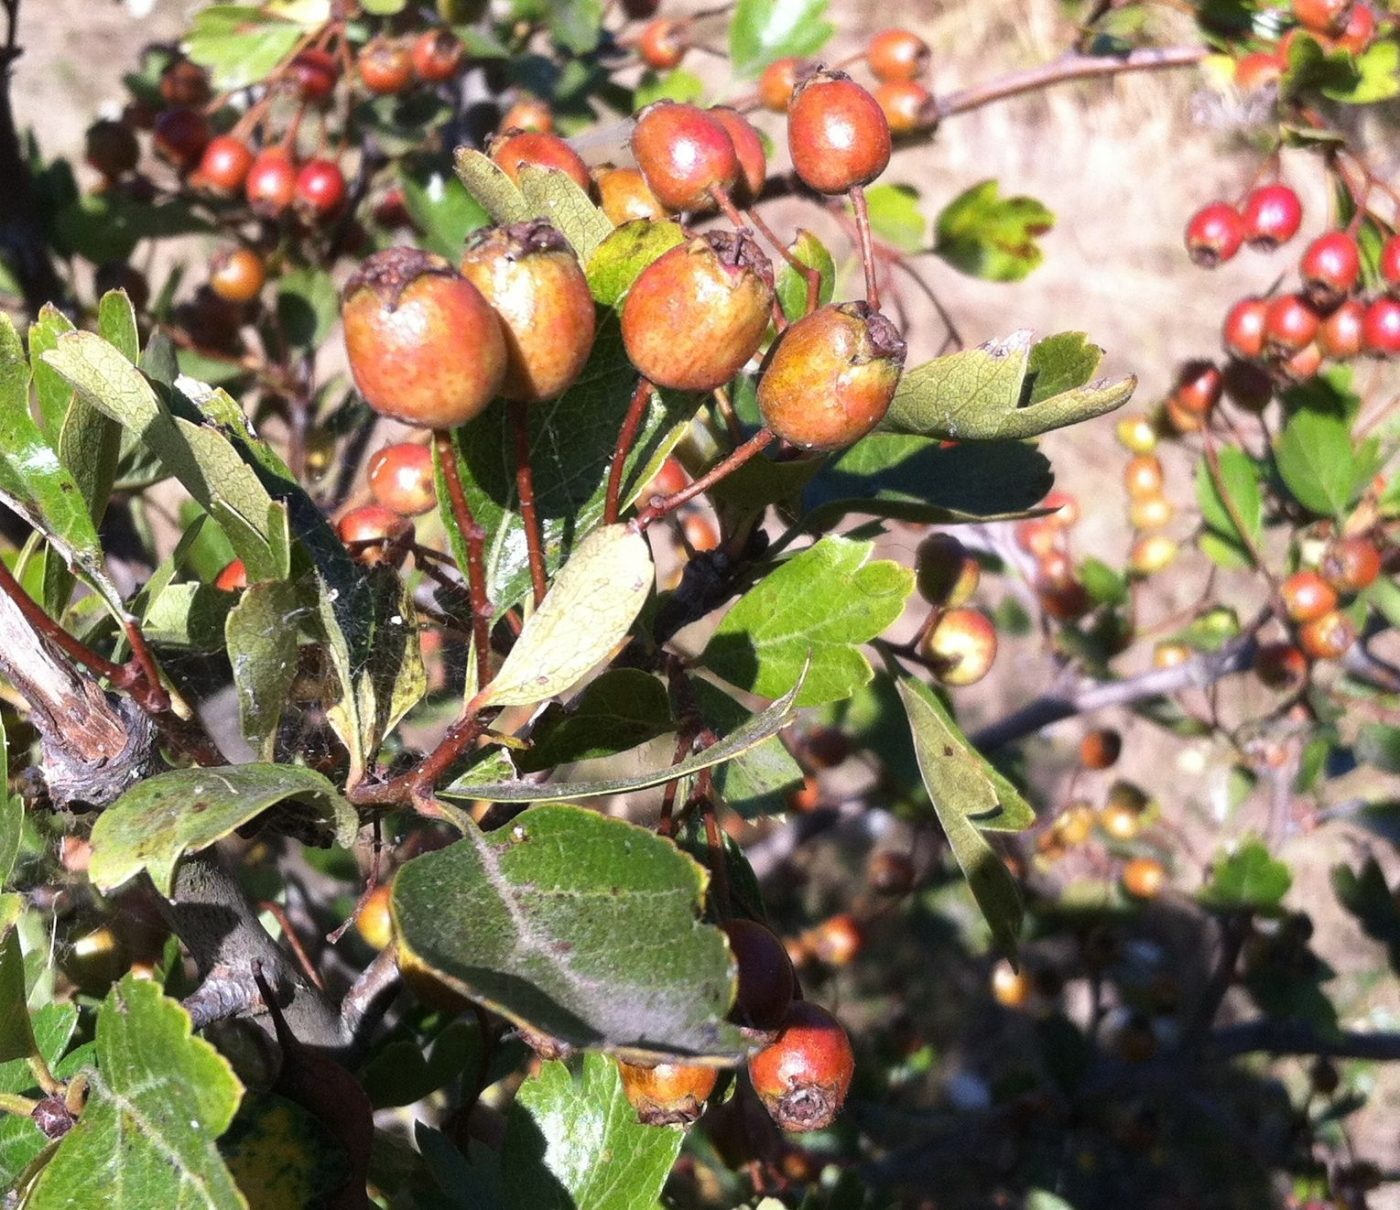 These Haws Are Too Young For Harvest.